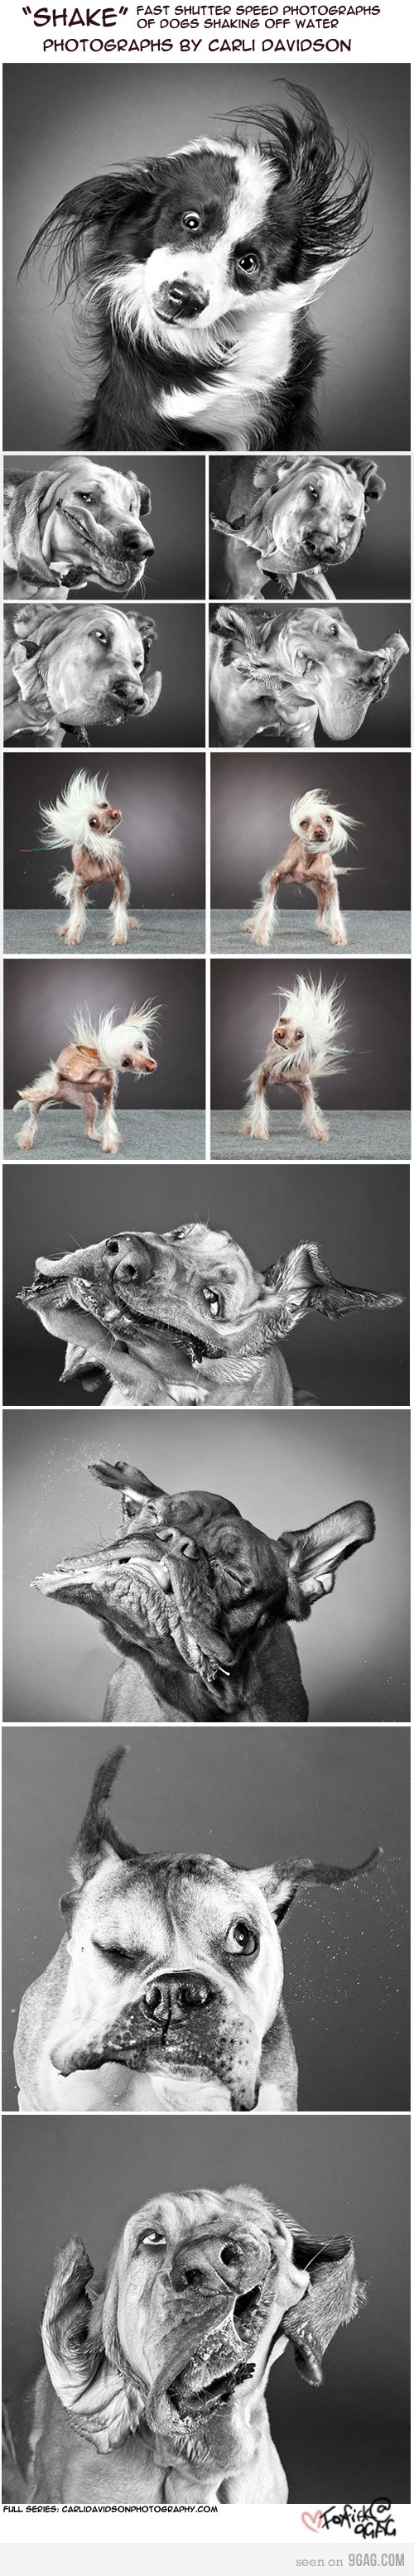 "Another pinner said: For her series ""Shake"", pet photographer Carli Davidson photographed curious portraits of dogs shaking off water.- This truly makes me happy!"